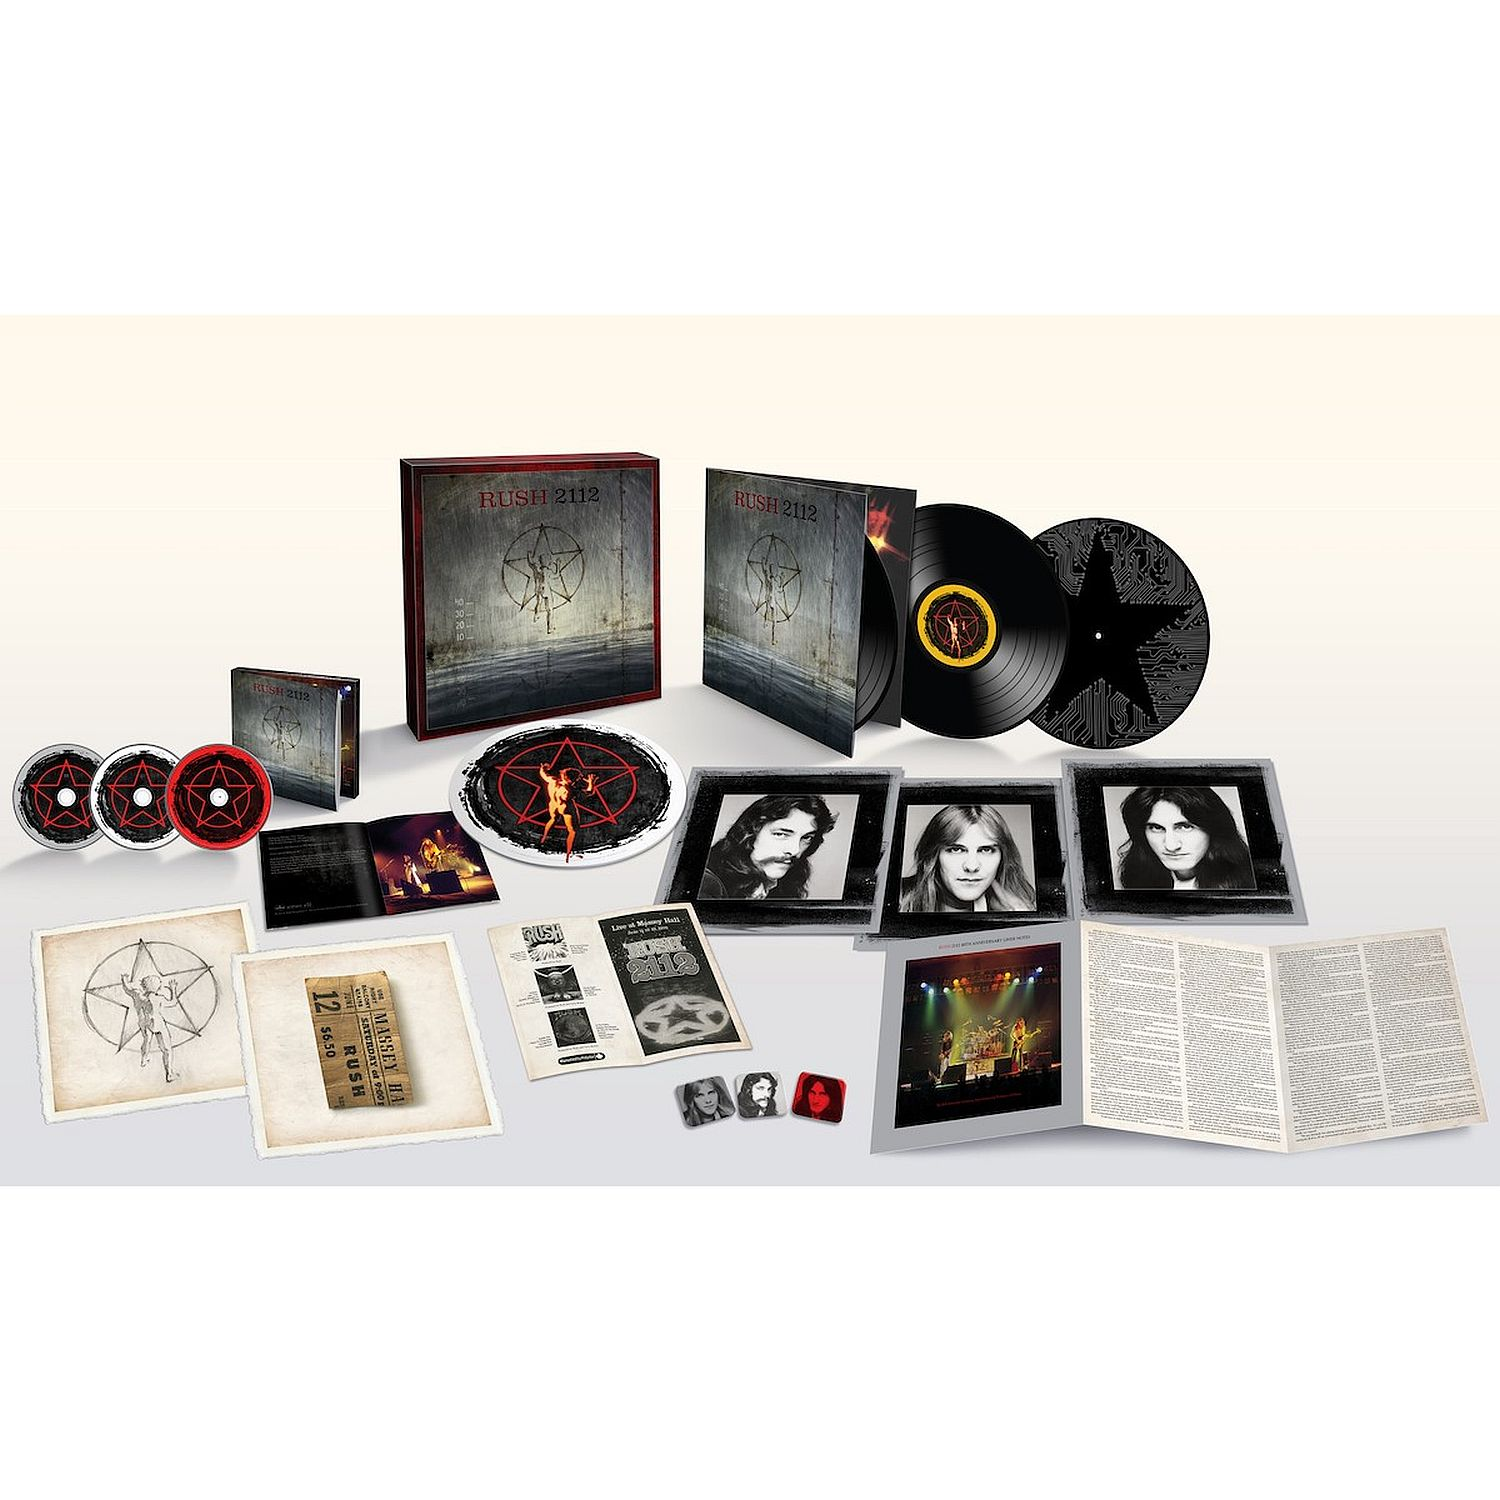 Rush 2112 Limited Edition Super Deluxe